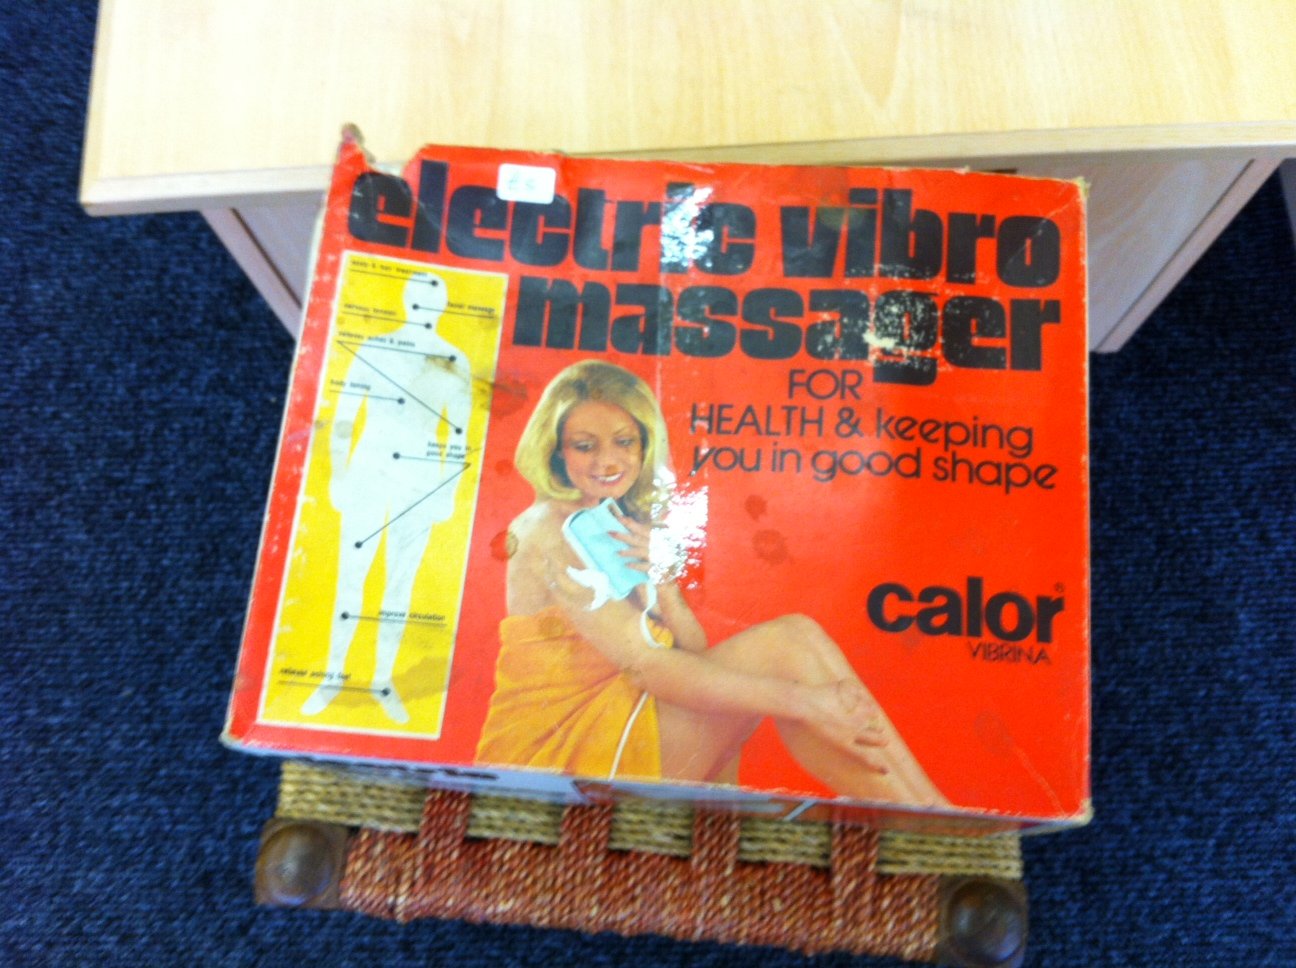 Electro Vibro Massager & other Charity Shop Goodies